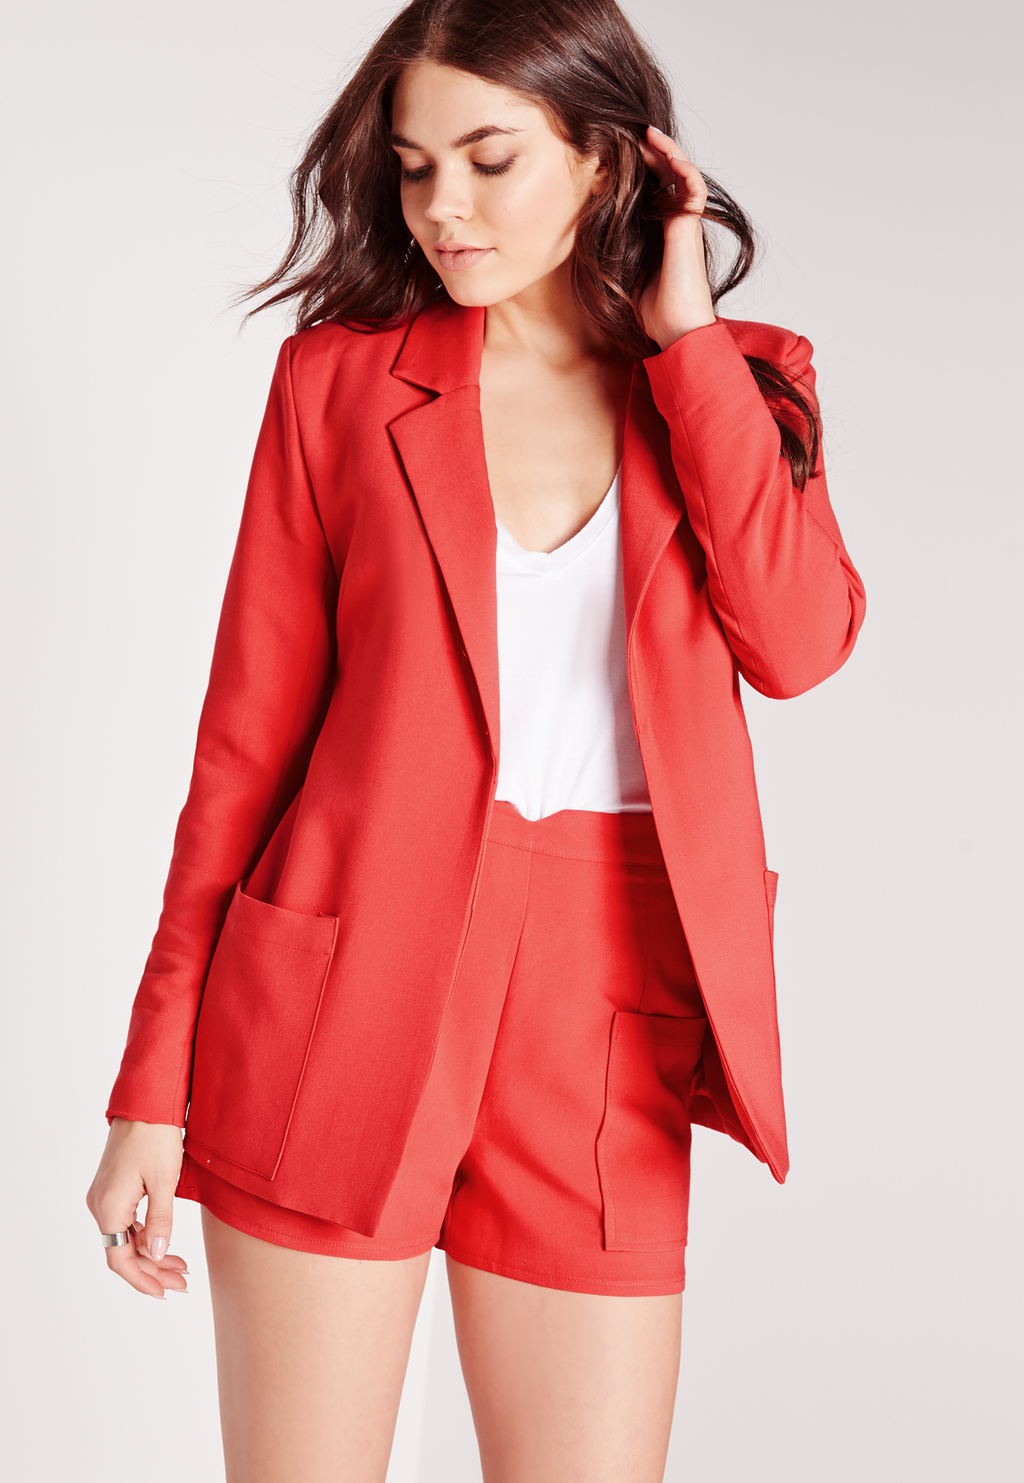 Boyfriend Suit Blazer Red, Red - pattern: plain; style: single breasted blazer; collar: standard lapel/rever collar; predominant colour: true red; length: standard; fit: tailored/fitted; fibres: polyester/polyamide - 100%; occasions: occasion, creative work; sleeve length: long sleeve; sleeve style: standard; texture group: crepes; collar break: low/open; pattern type: fabric; season: s/s 2016; wardrobe: investment